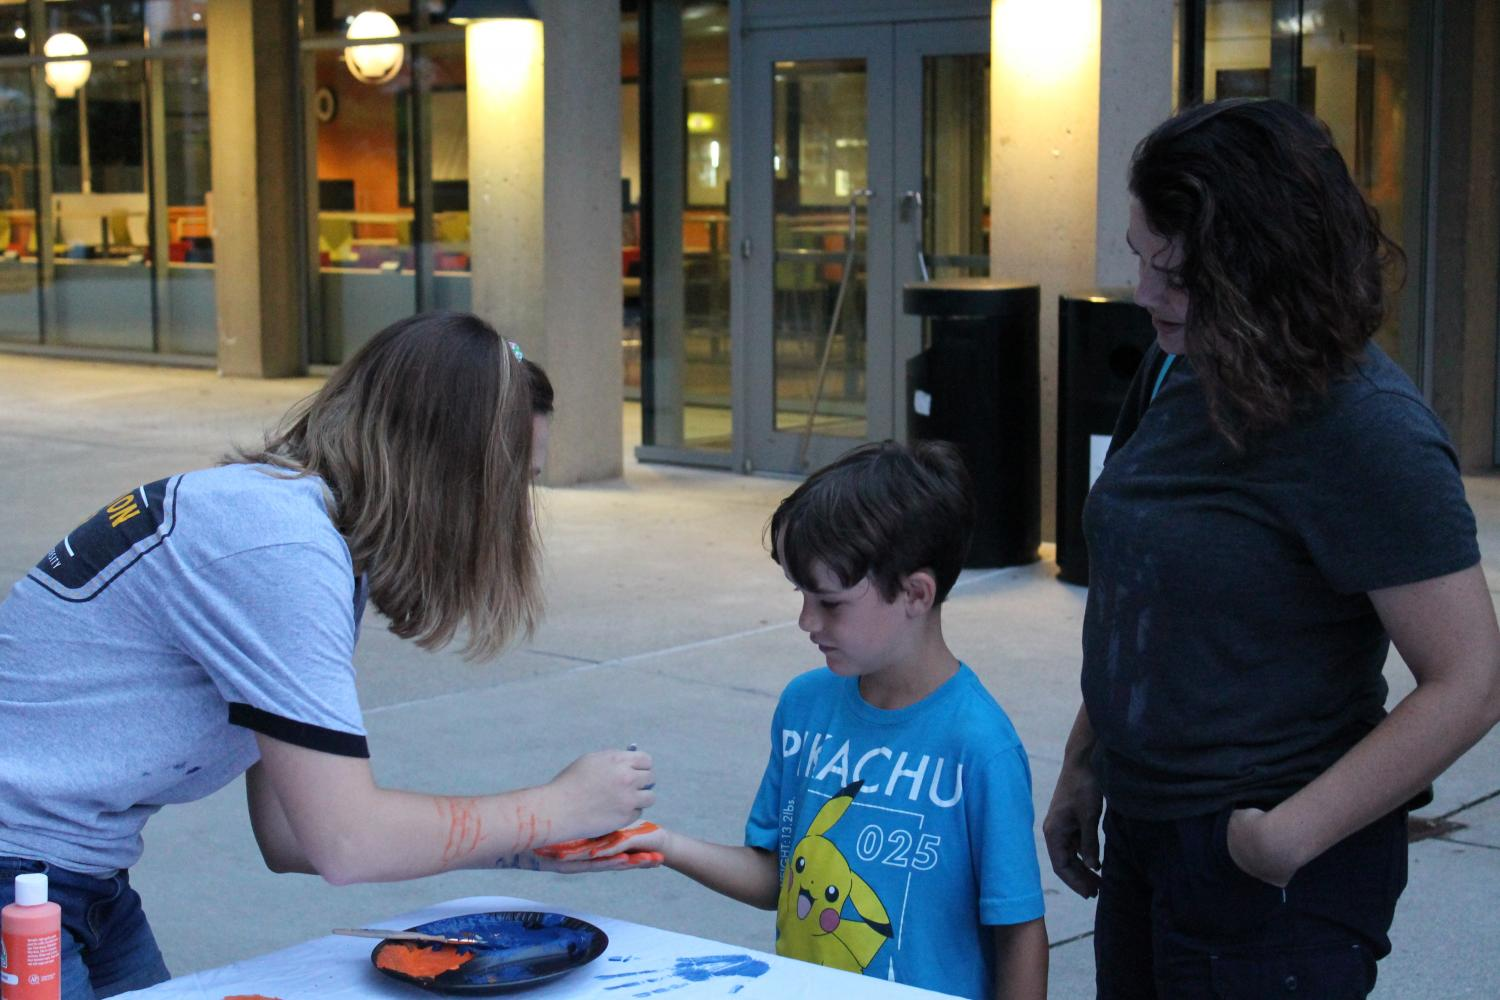 Community members, faculty, administration and  students turned out for the Vigil. Here, Edelen helps paint a child's hand.